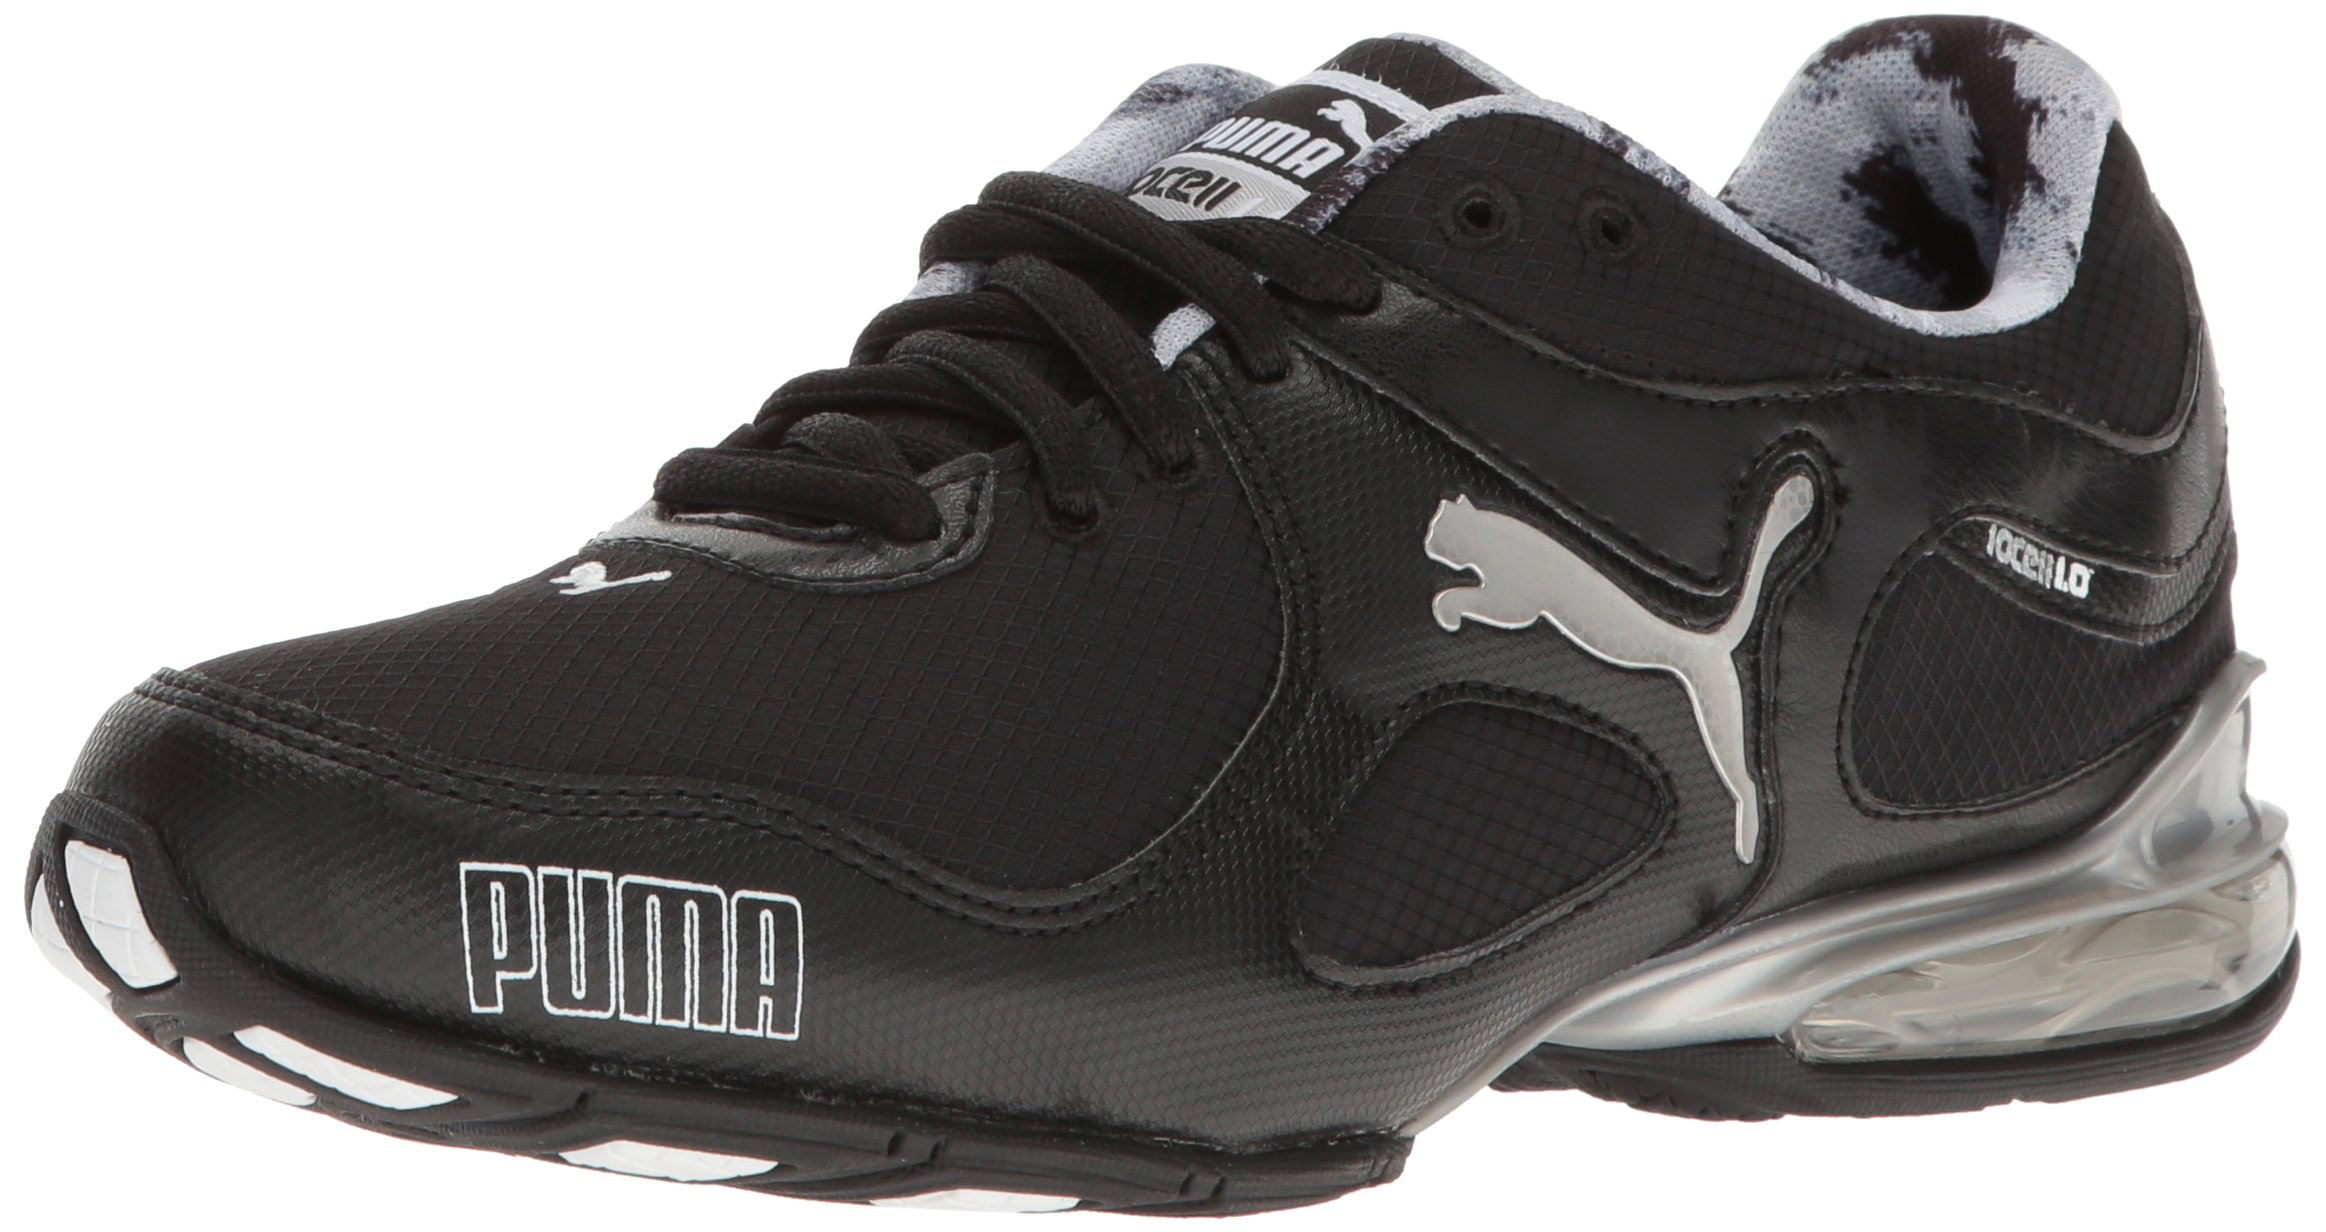 ... free shipping puma womens cell riaze wns paintbrush cross trainer shoe  4bb8c 4e117 1ffa3a30a